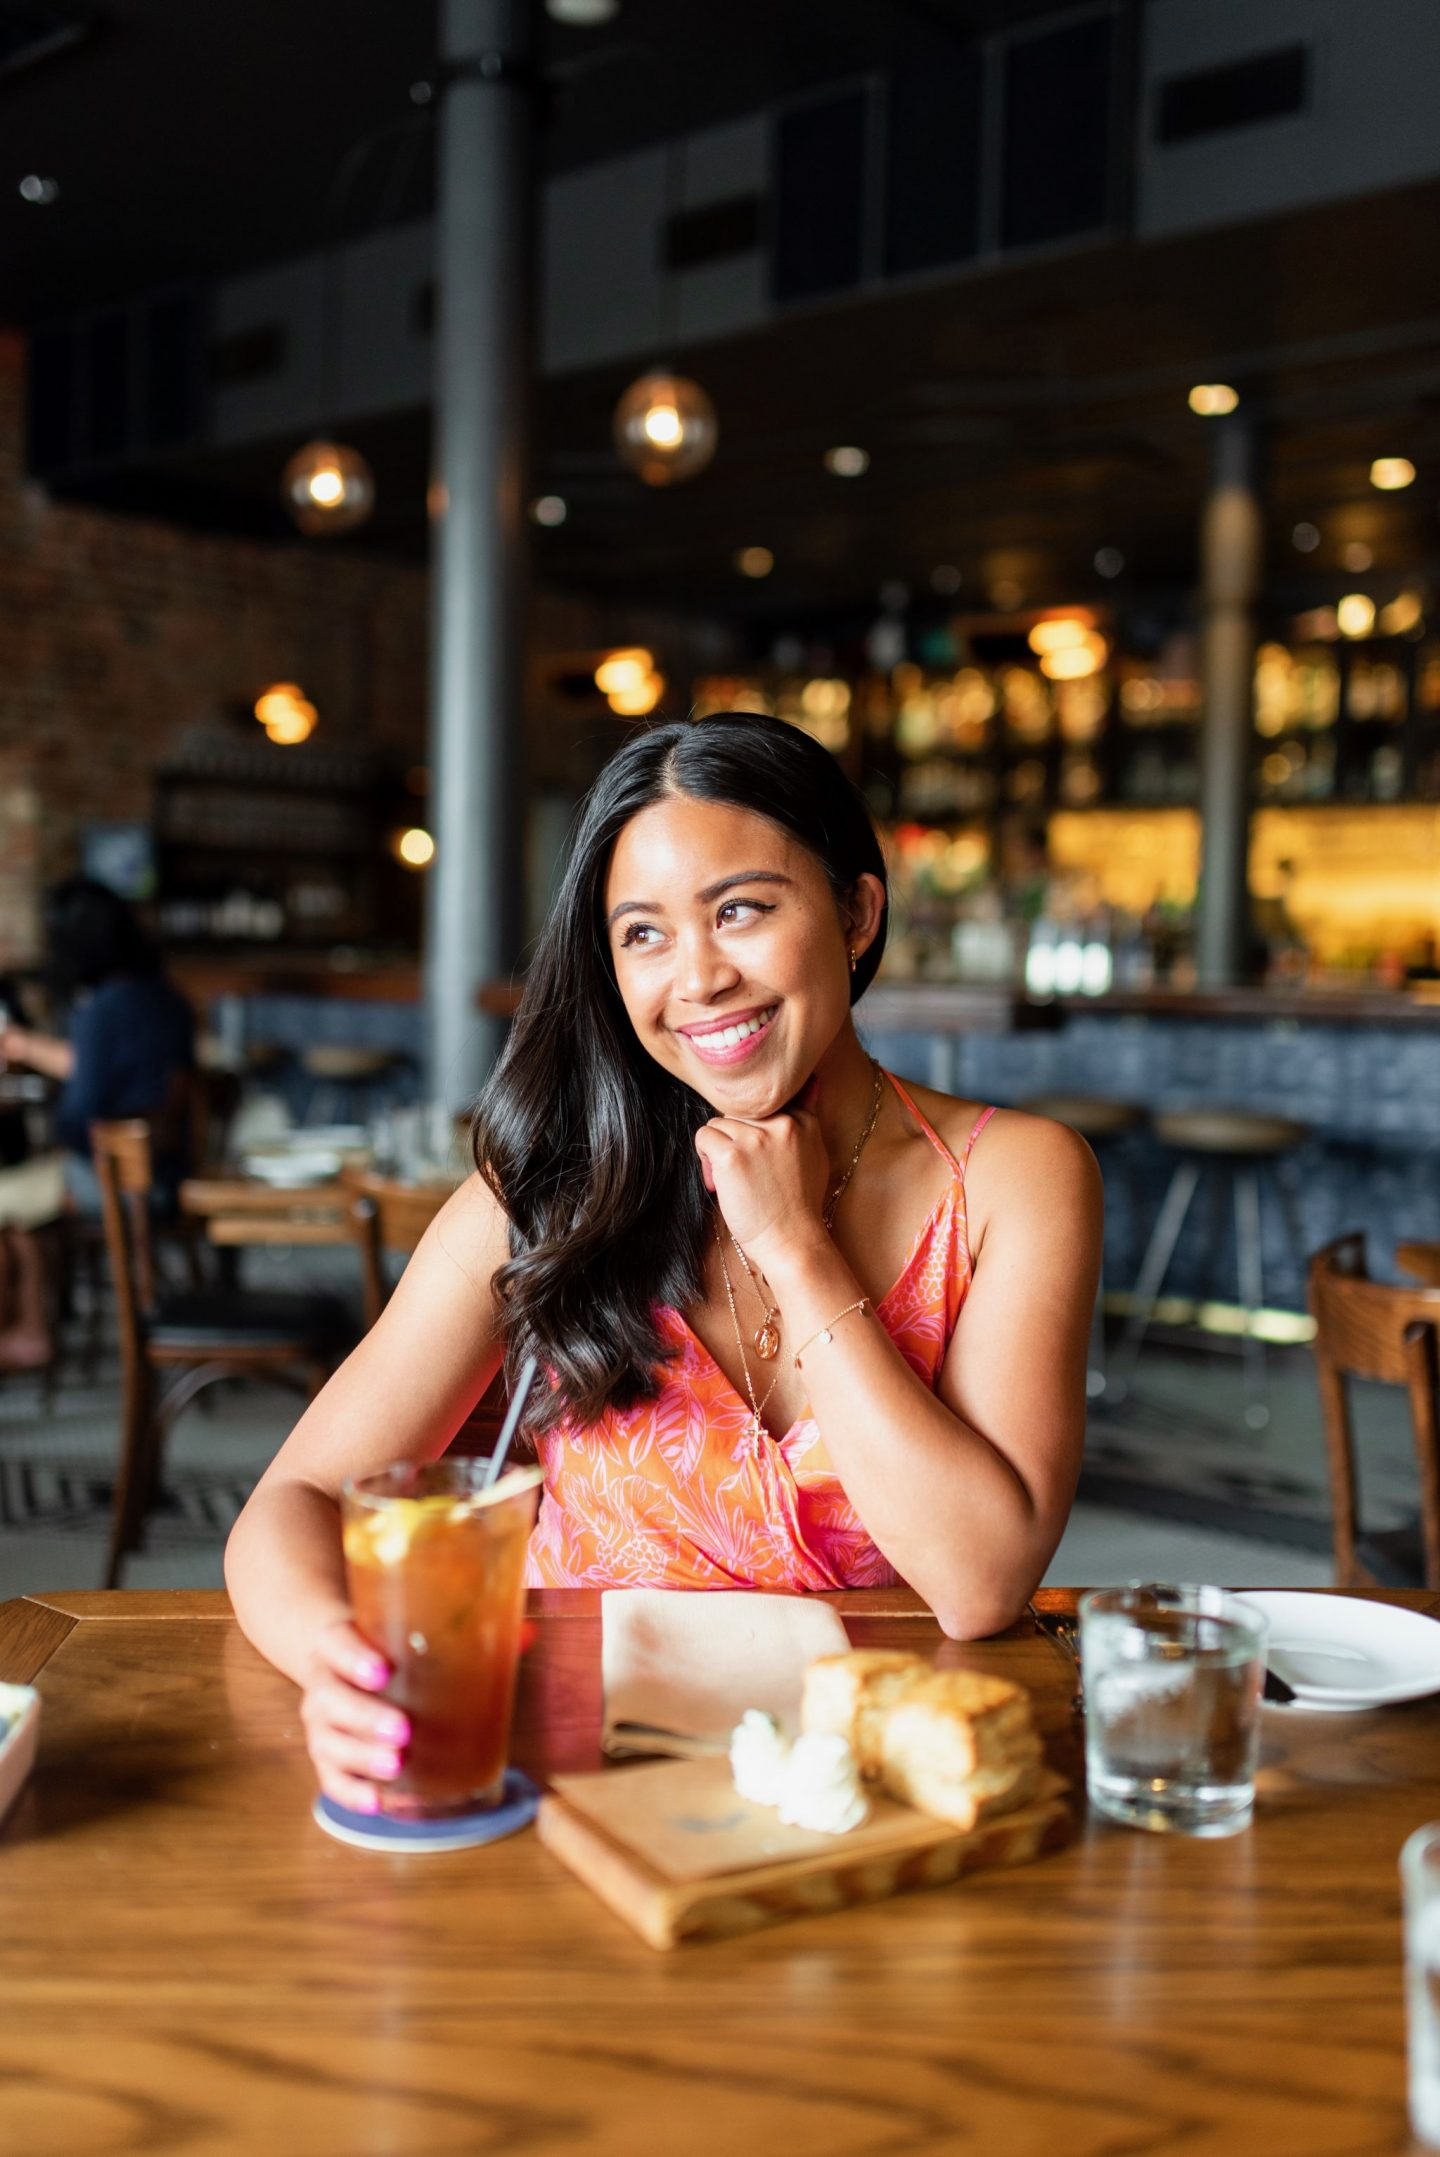 Compere Lapin - New Orleans Restaurants